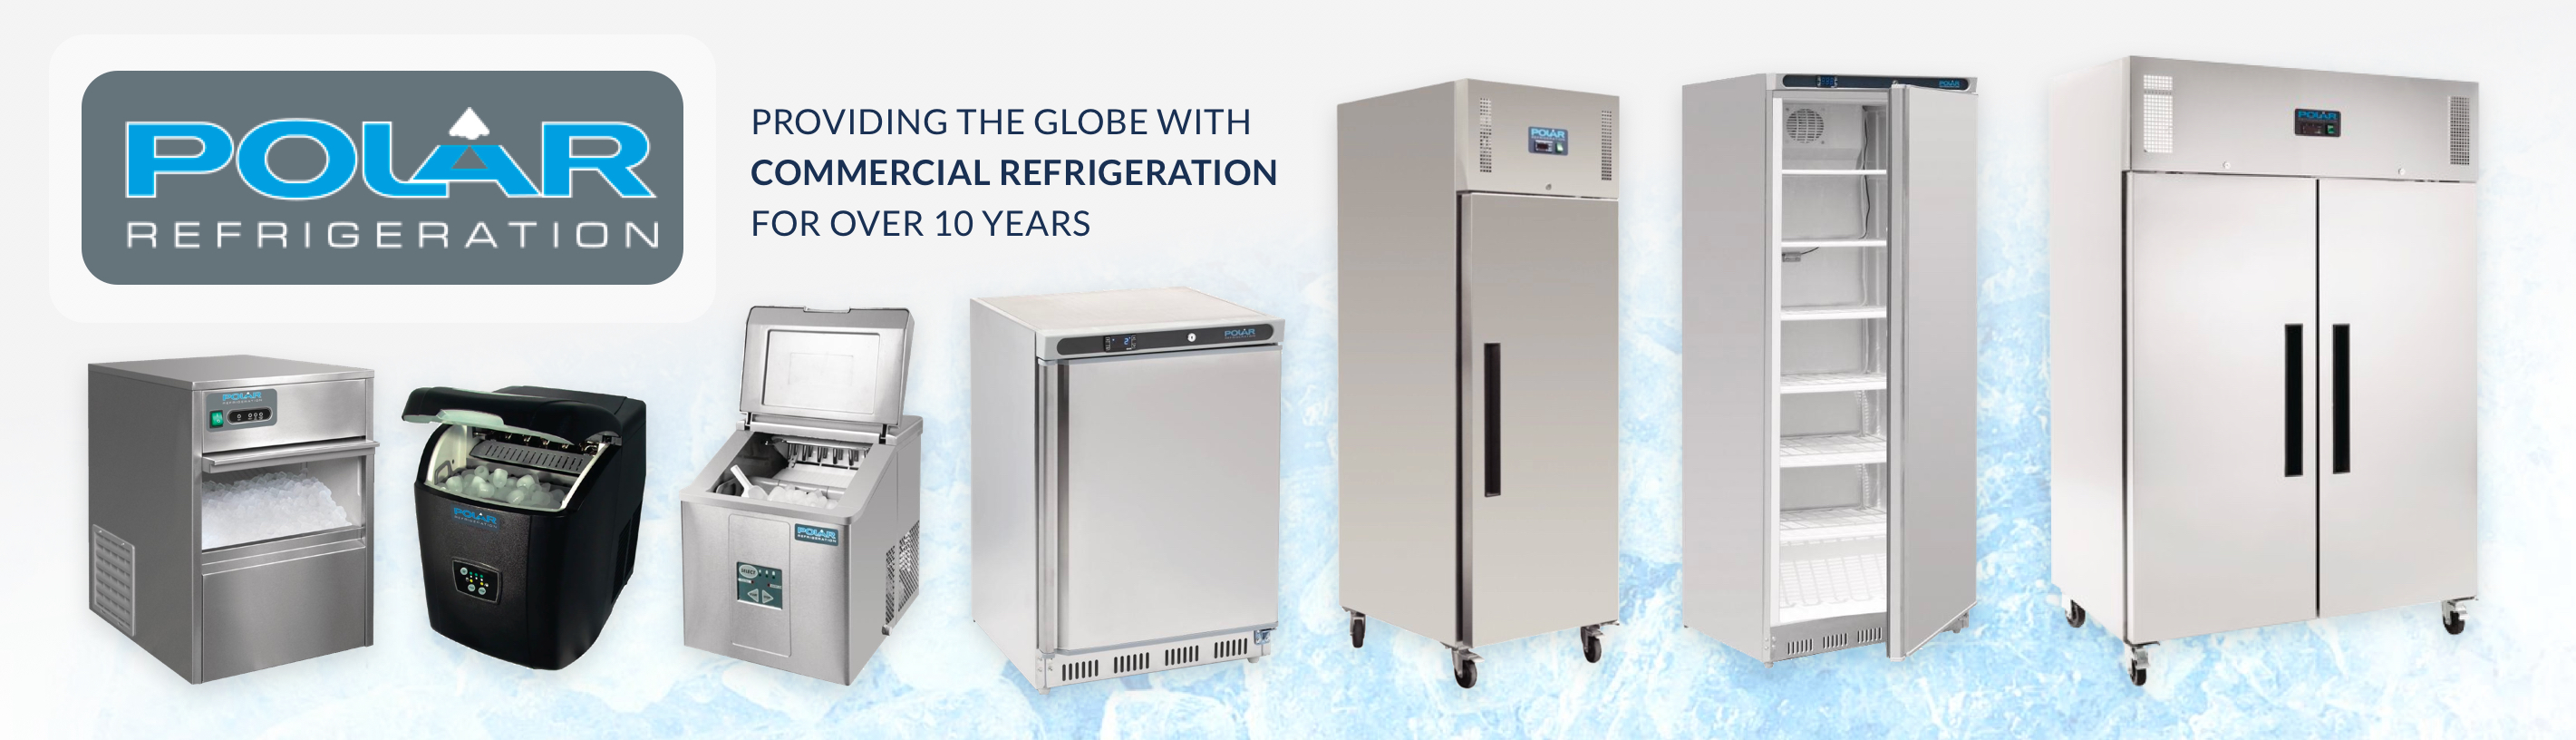 Polar Refrigeration Range